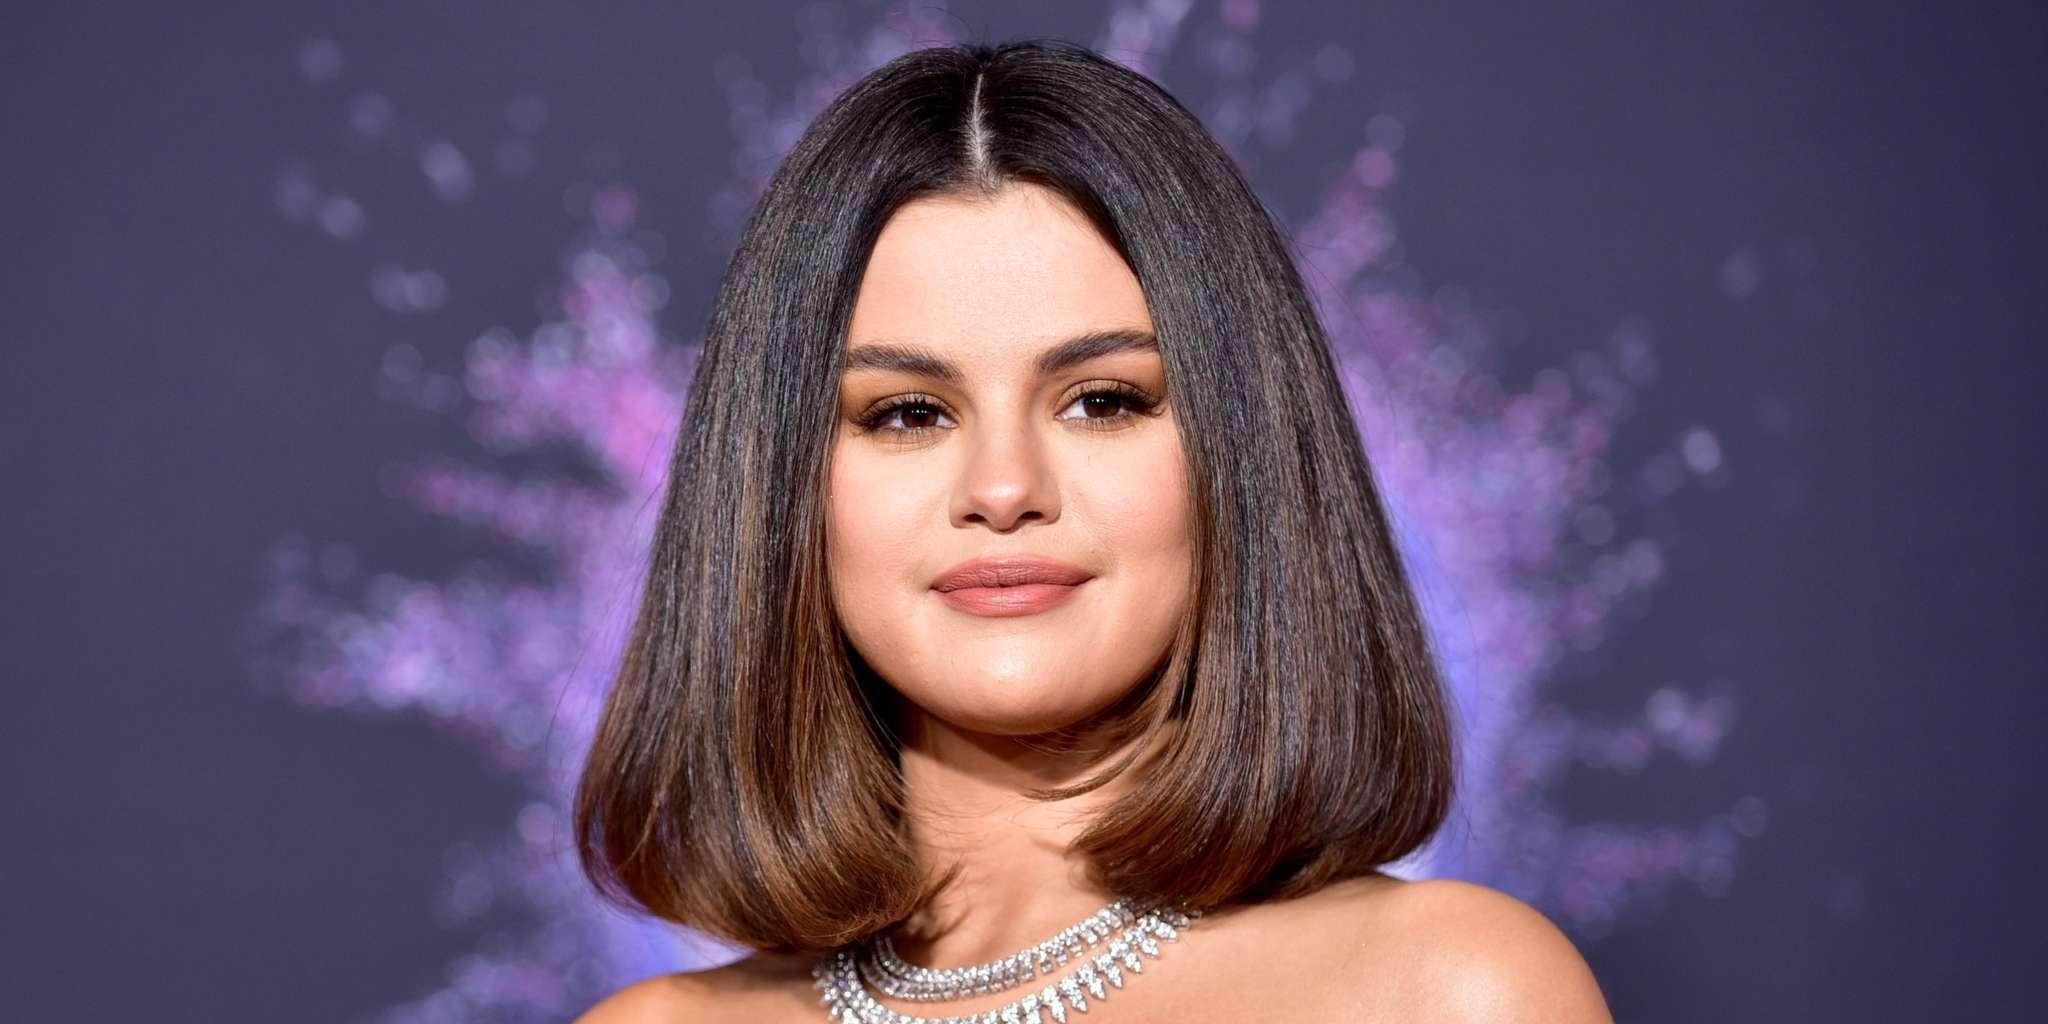 Selena Gomez Stung By A Jellyfish-Like Sea Creature During Hawaii Vacation